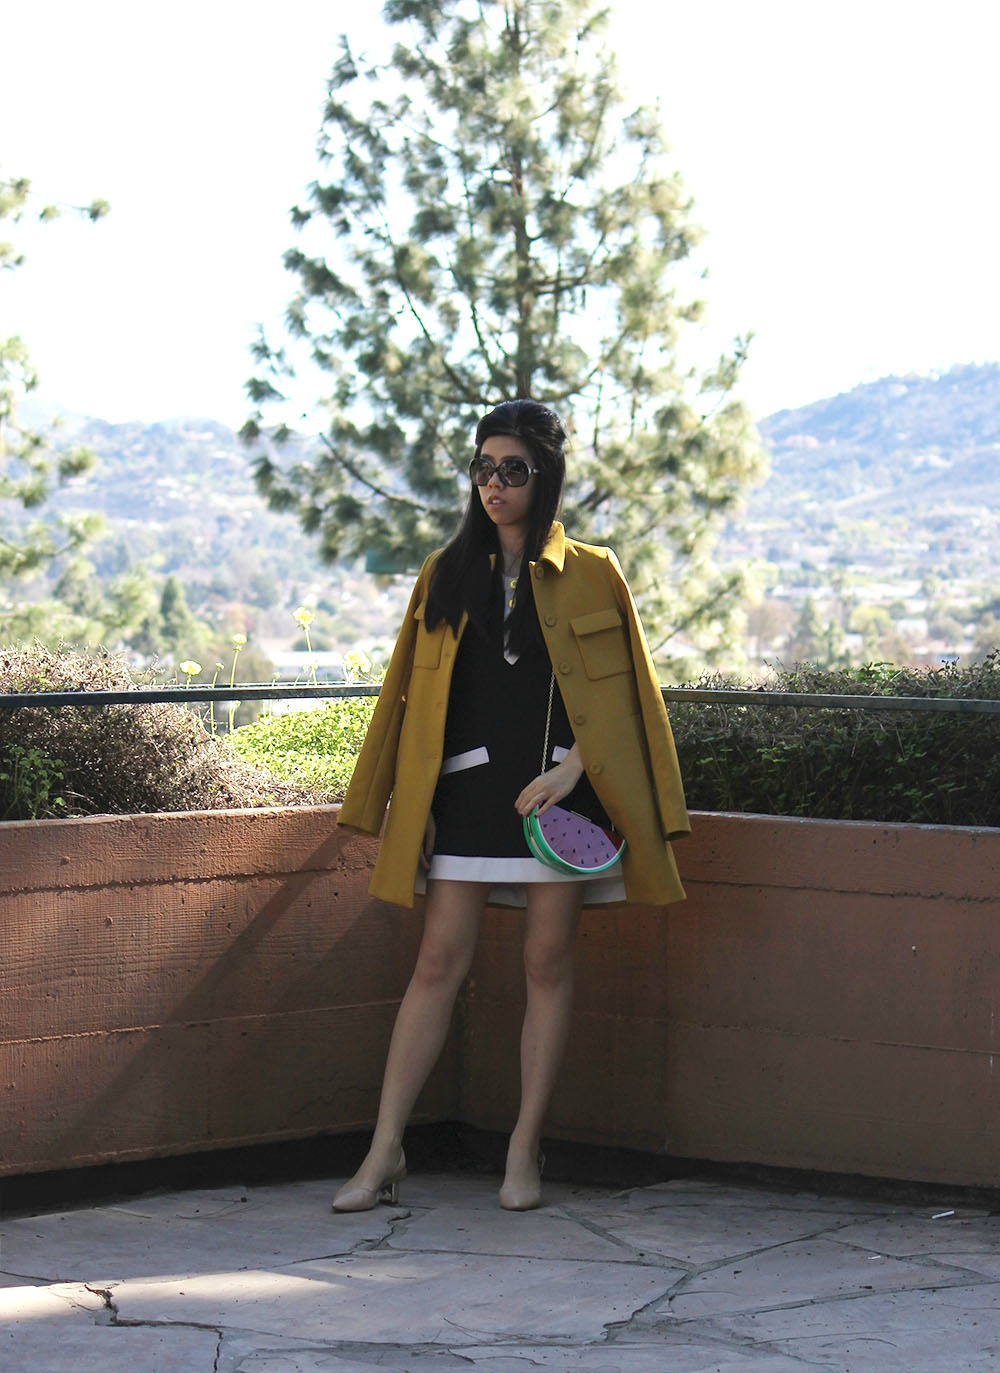 Adrienne Nguyen_How to look chic at school without doing a lot of work